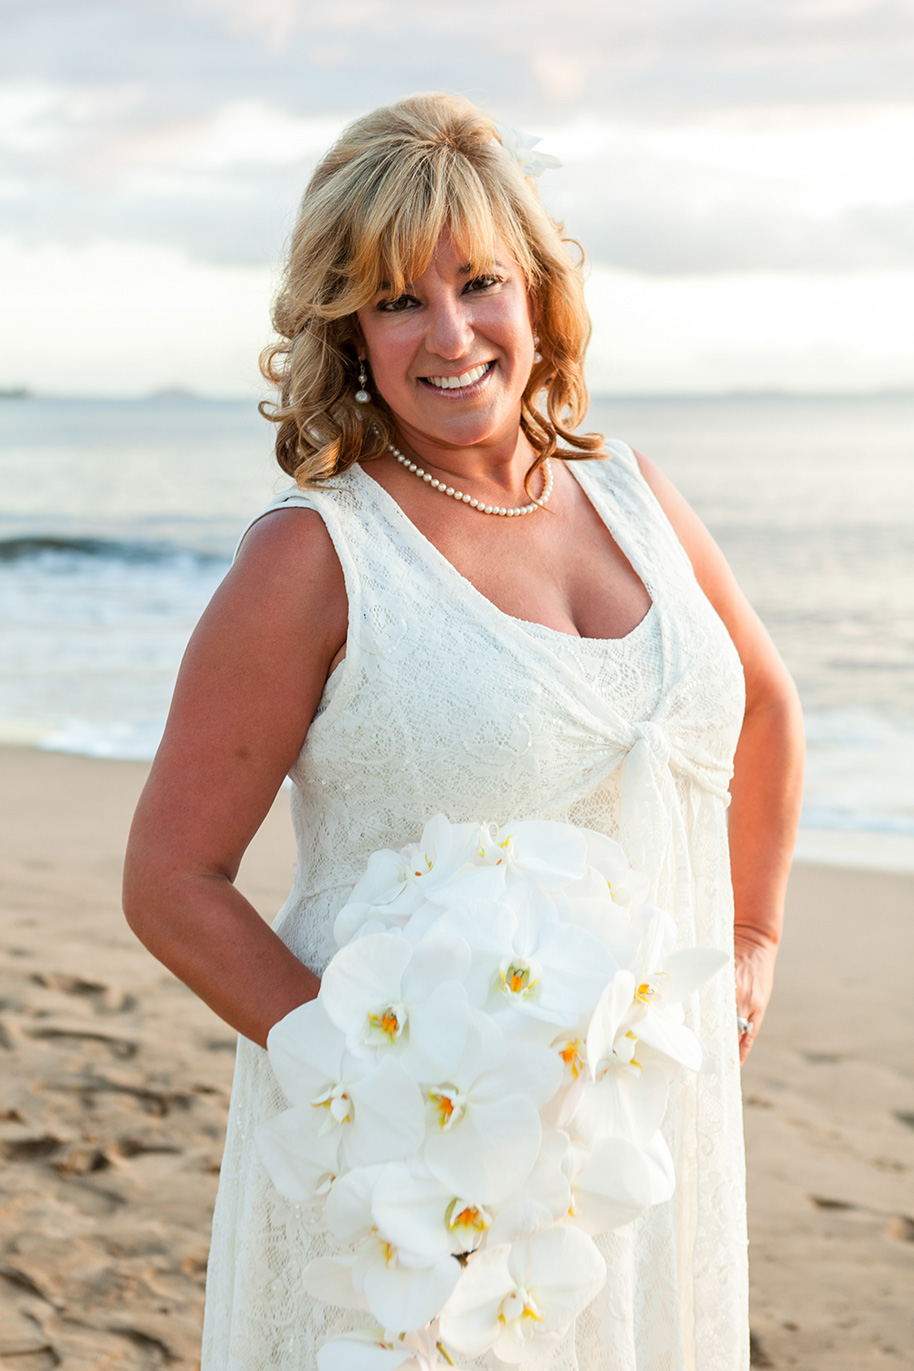 Maui-Beachside-Wedding-042916-24